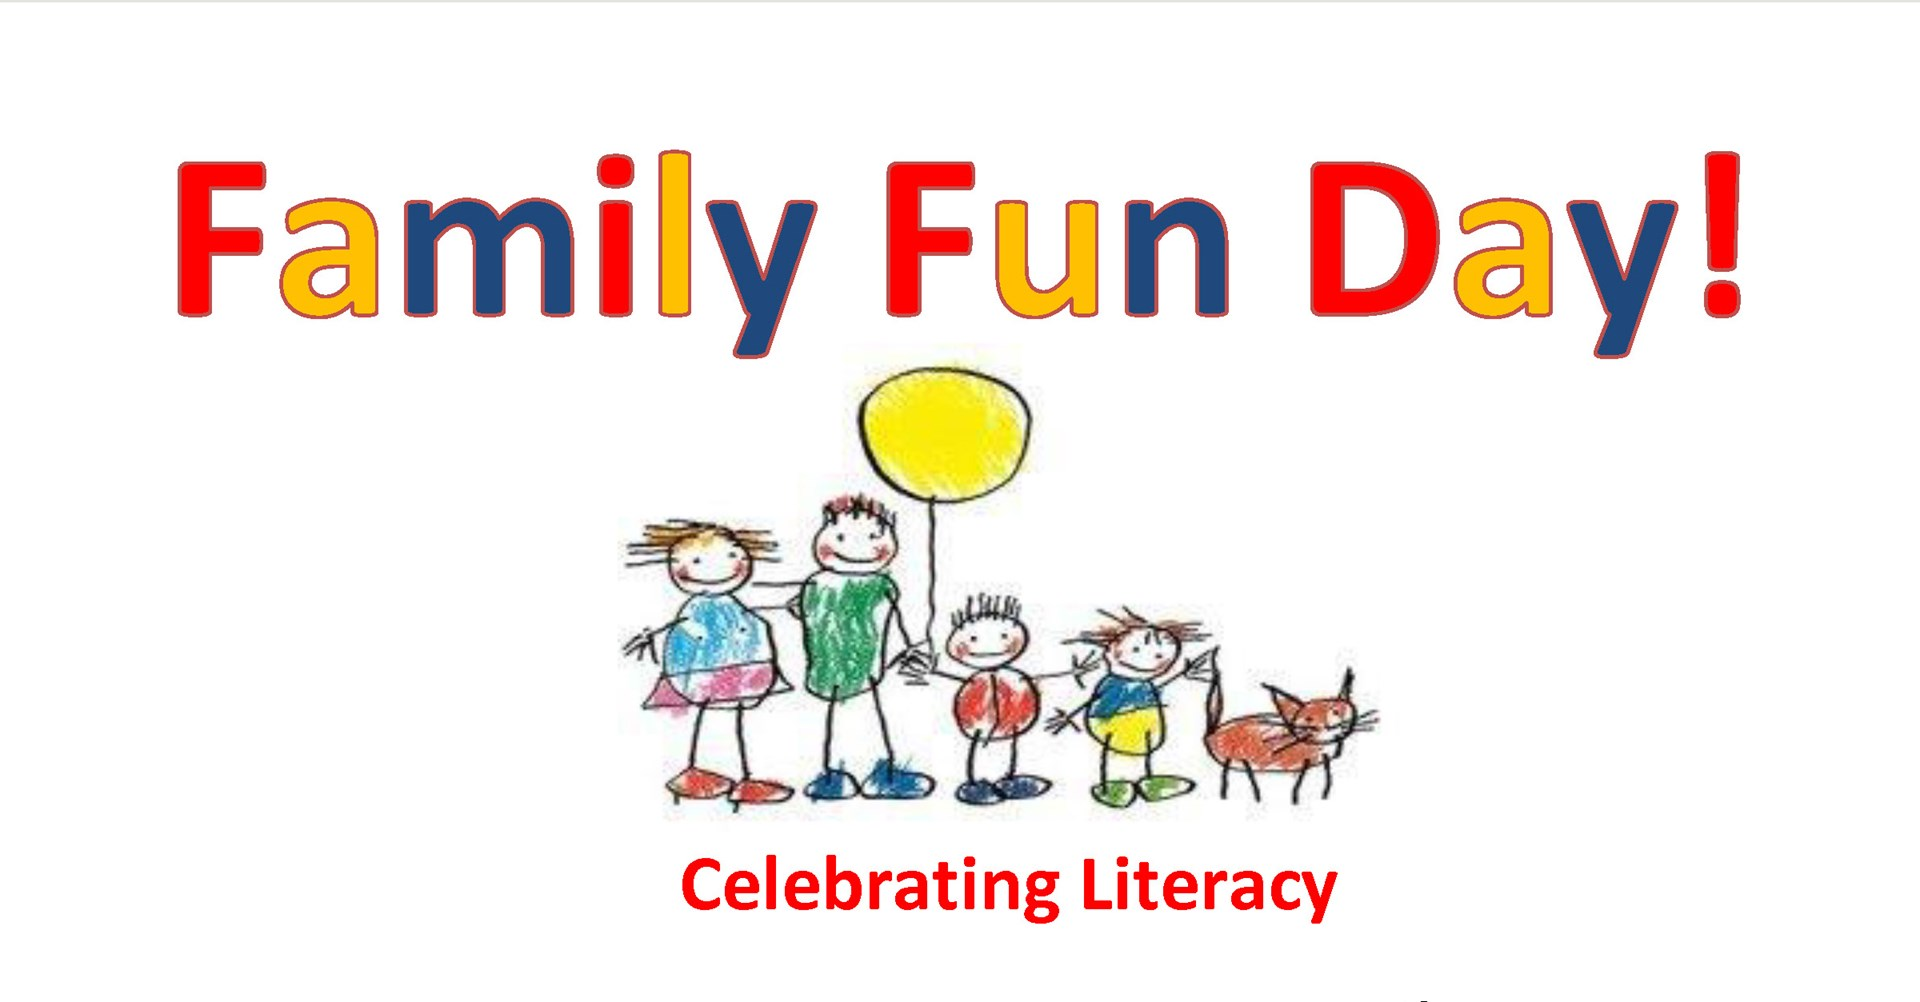 Family Fun Day Literacy poster 2019 Leader.jpg